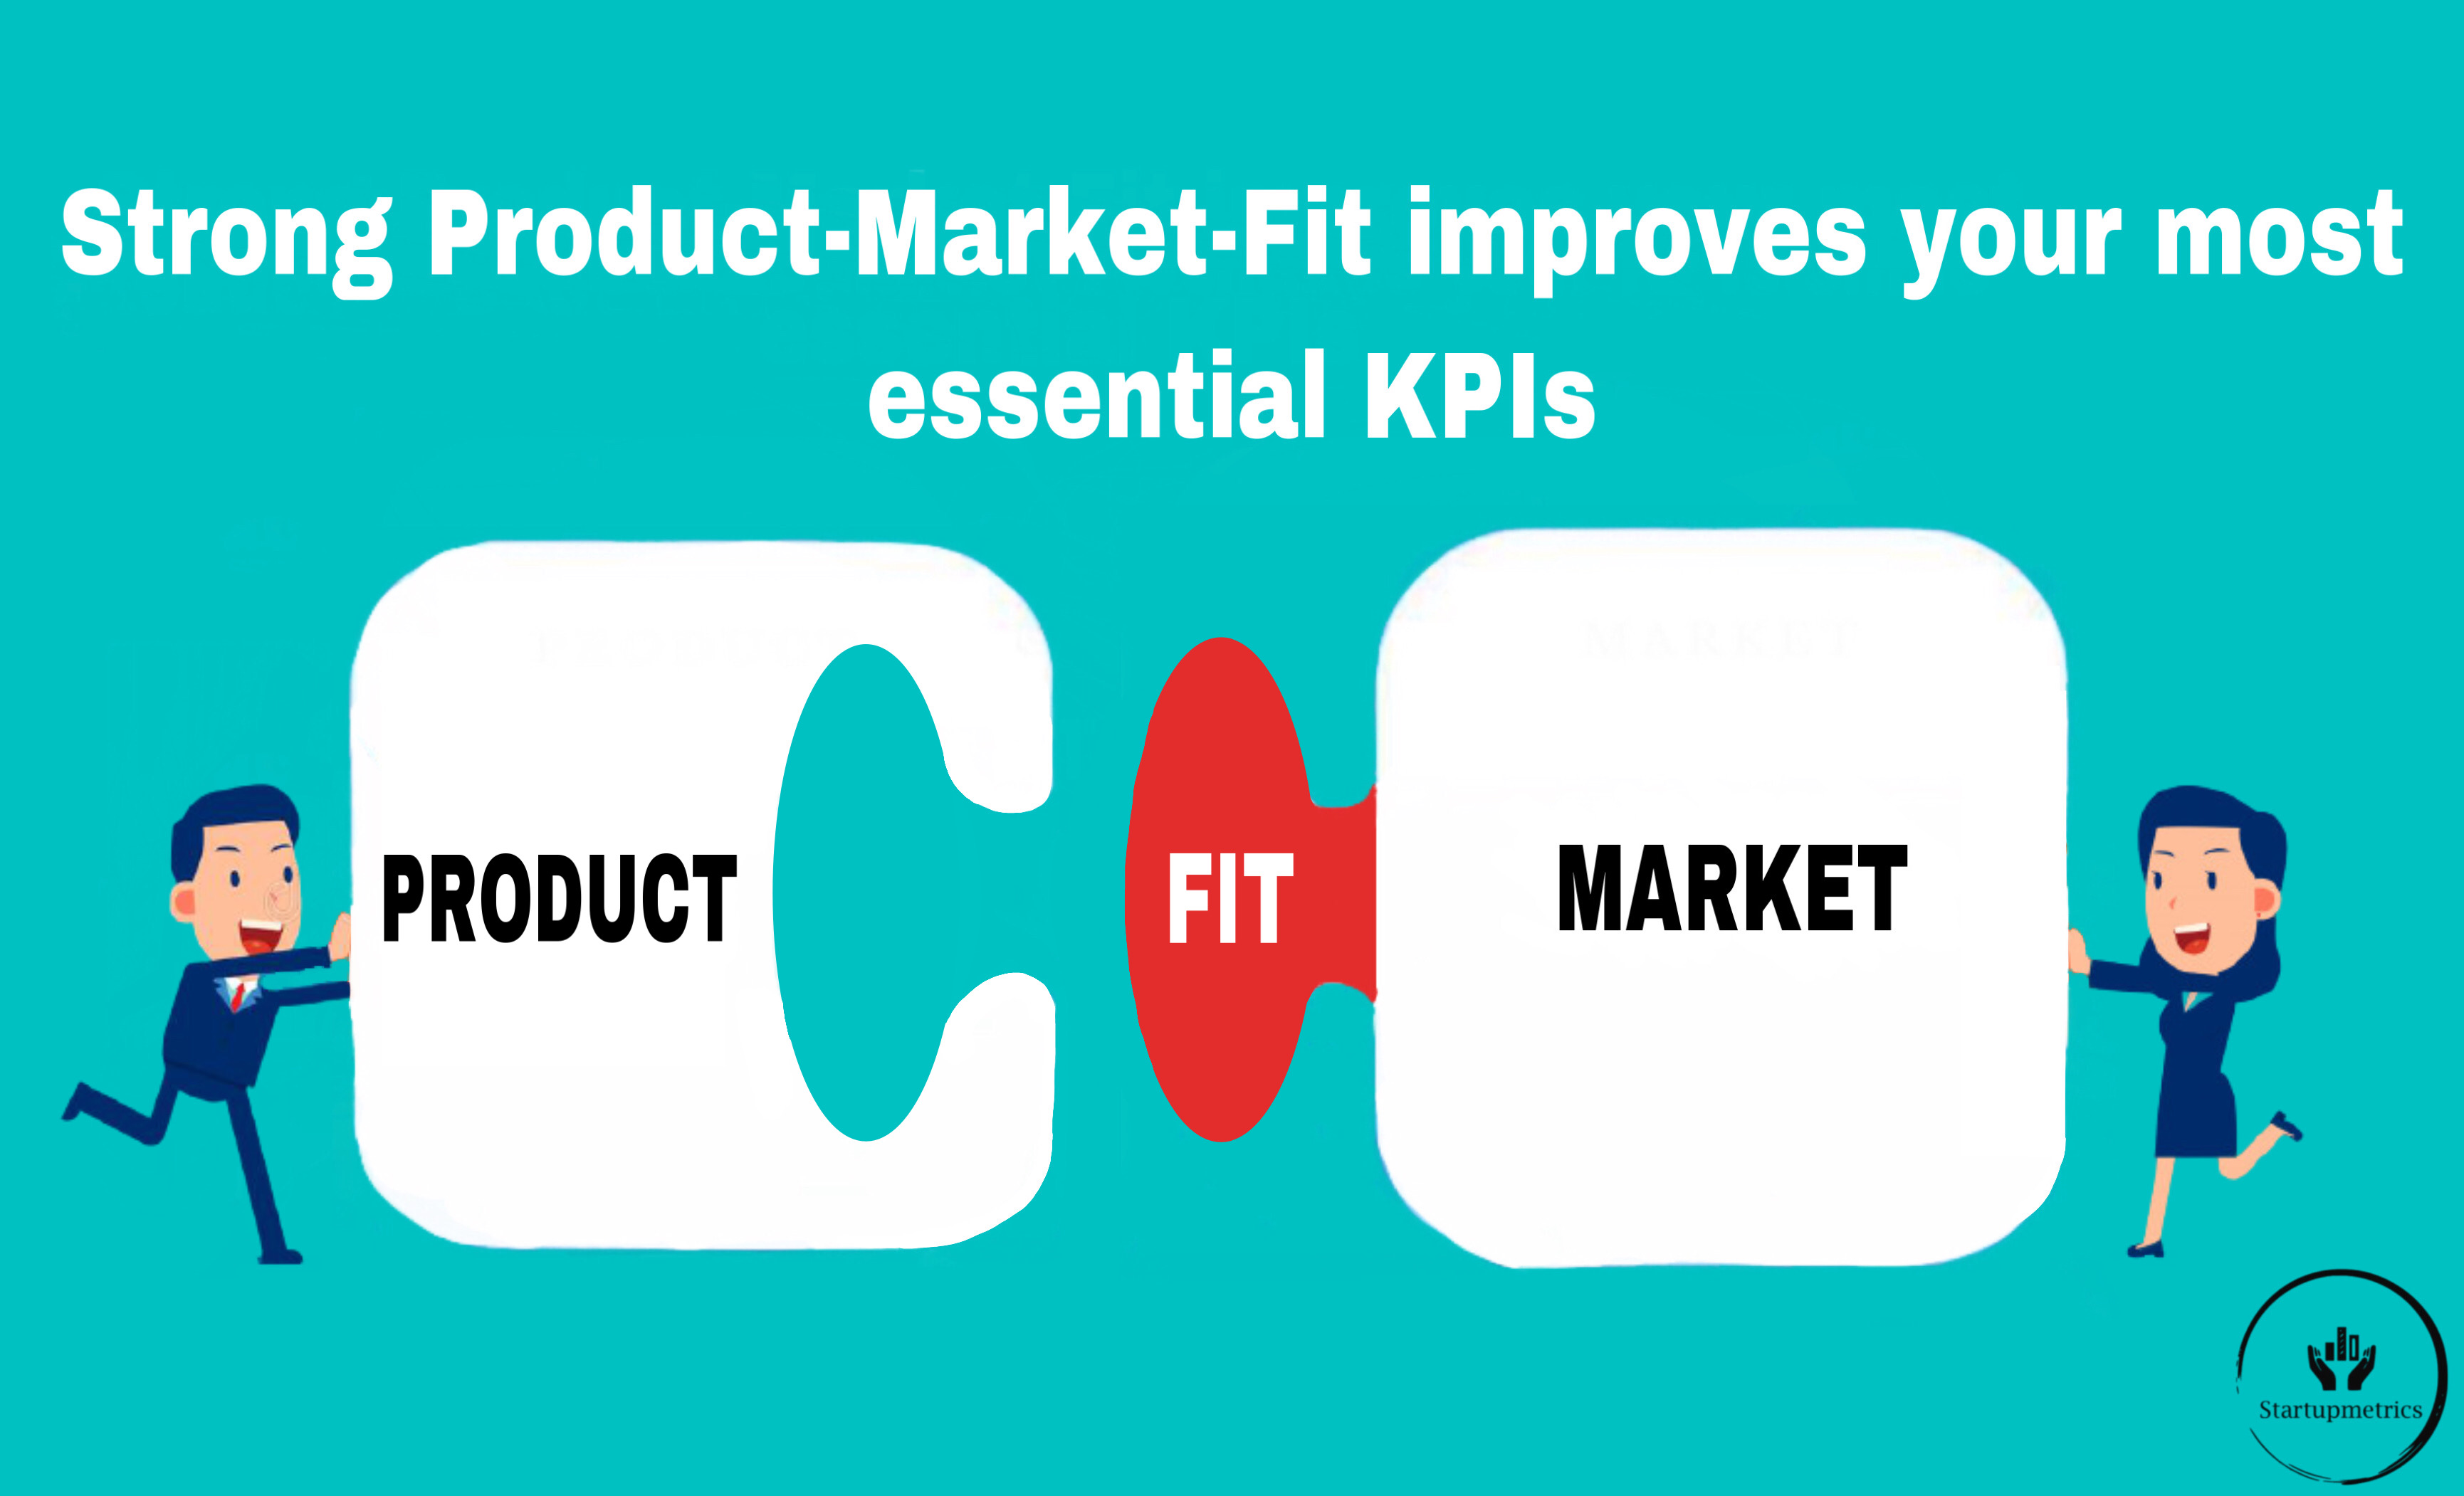 Find Product-Market-Fit to experience exponential Growth